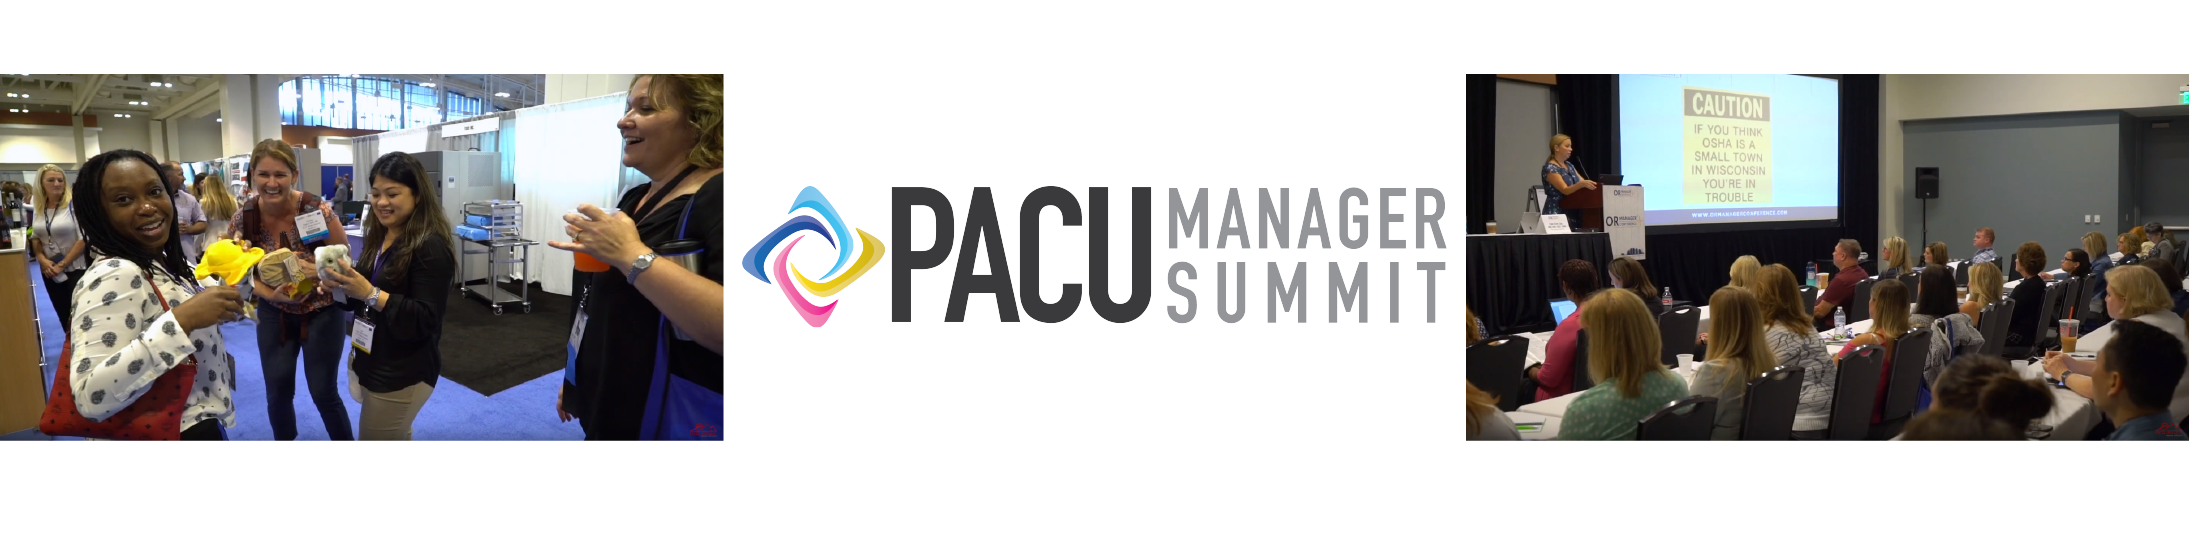 2018 PACU manager summit, Video Production, Film, Director, Producer, Video Producer, Corporate Video, Highlight Video, Sizzle Reel, Promo Video, Video Editing, Post-Production, Adobe Premiere, Editing, Conference, Trade Show, Exhibit, Expo, Marketing, Promotional Material, Recap, Las Vegas Video Production, Video Production Las Vegas, Las Vegas, Nevada, Video Production Chicago, Chicago Video Production, New York City Video Production, Video Production New York City, NYC Video Production, Video Production NYC, Orlando Video Production, Video Production Orlando, Los Angeles Video Production, Video Production Los Angeles, Orlando Florida, Chicago Illinois, Los Angeles California, New York City New York